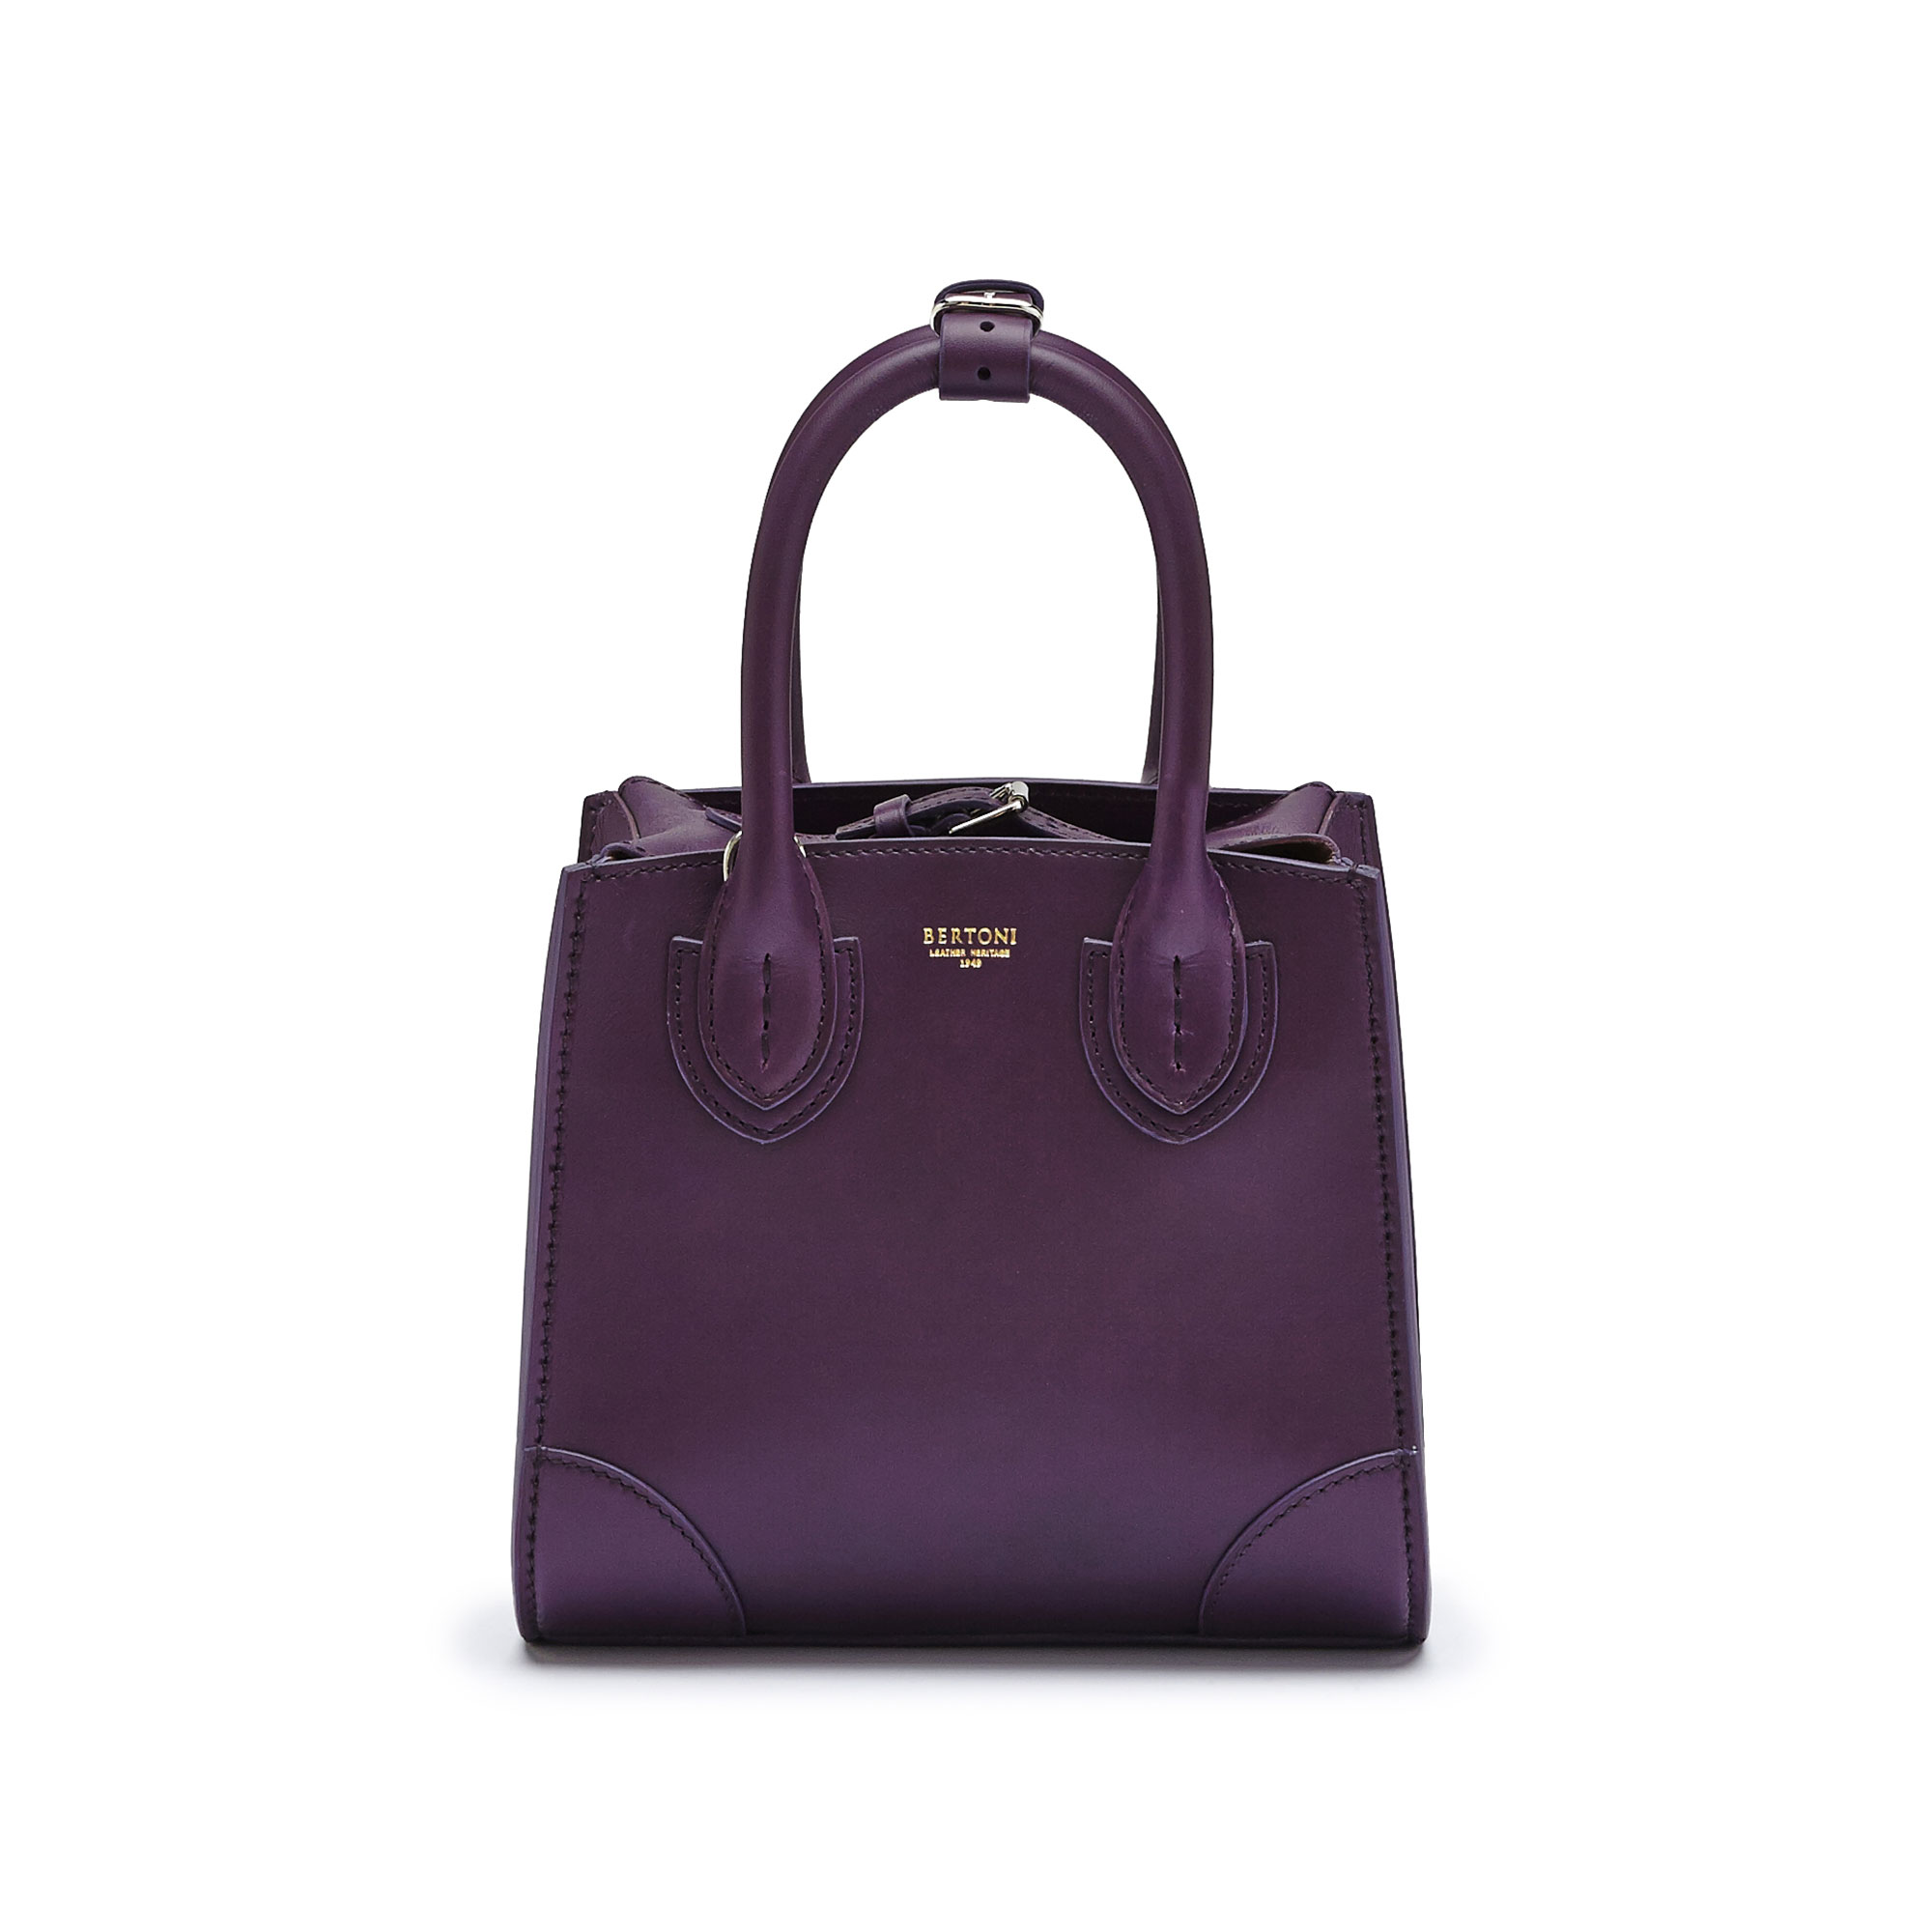 The aubergine color french calf Darcy small bag by Bertoni 1949 01